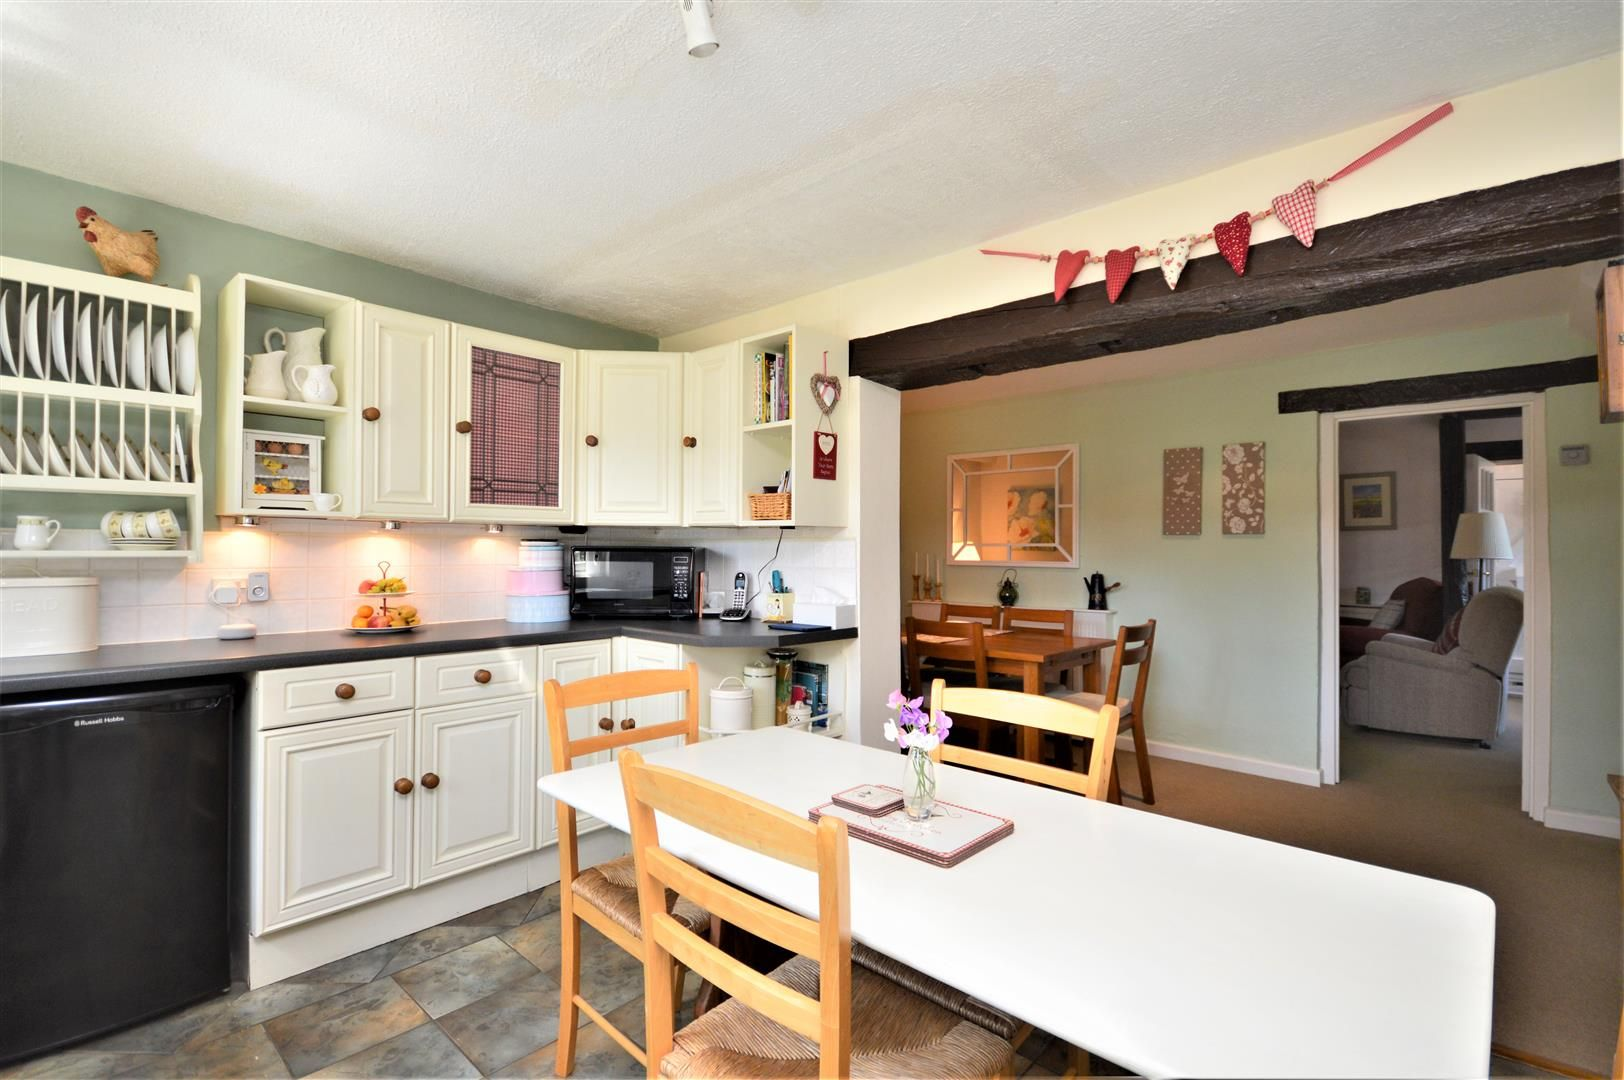 3 bed semi-detached for sale in Madley 6